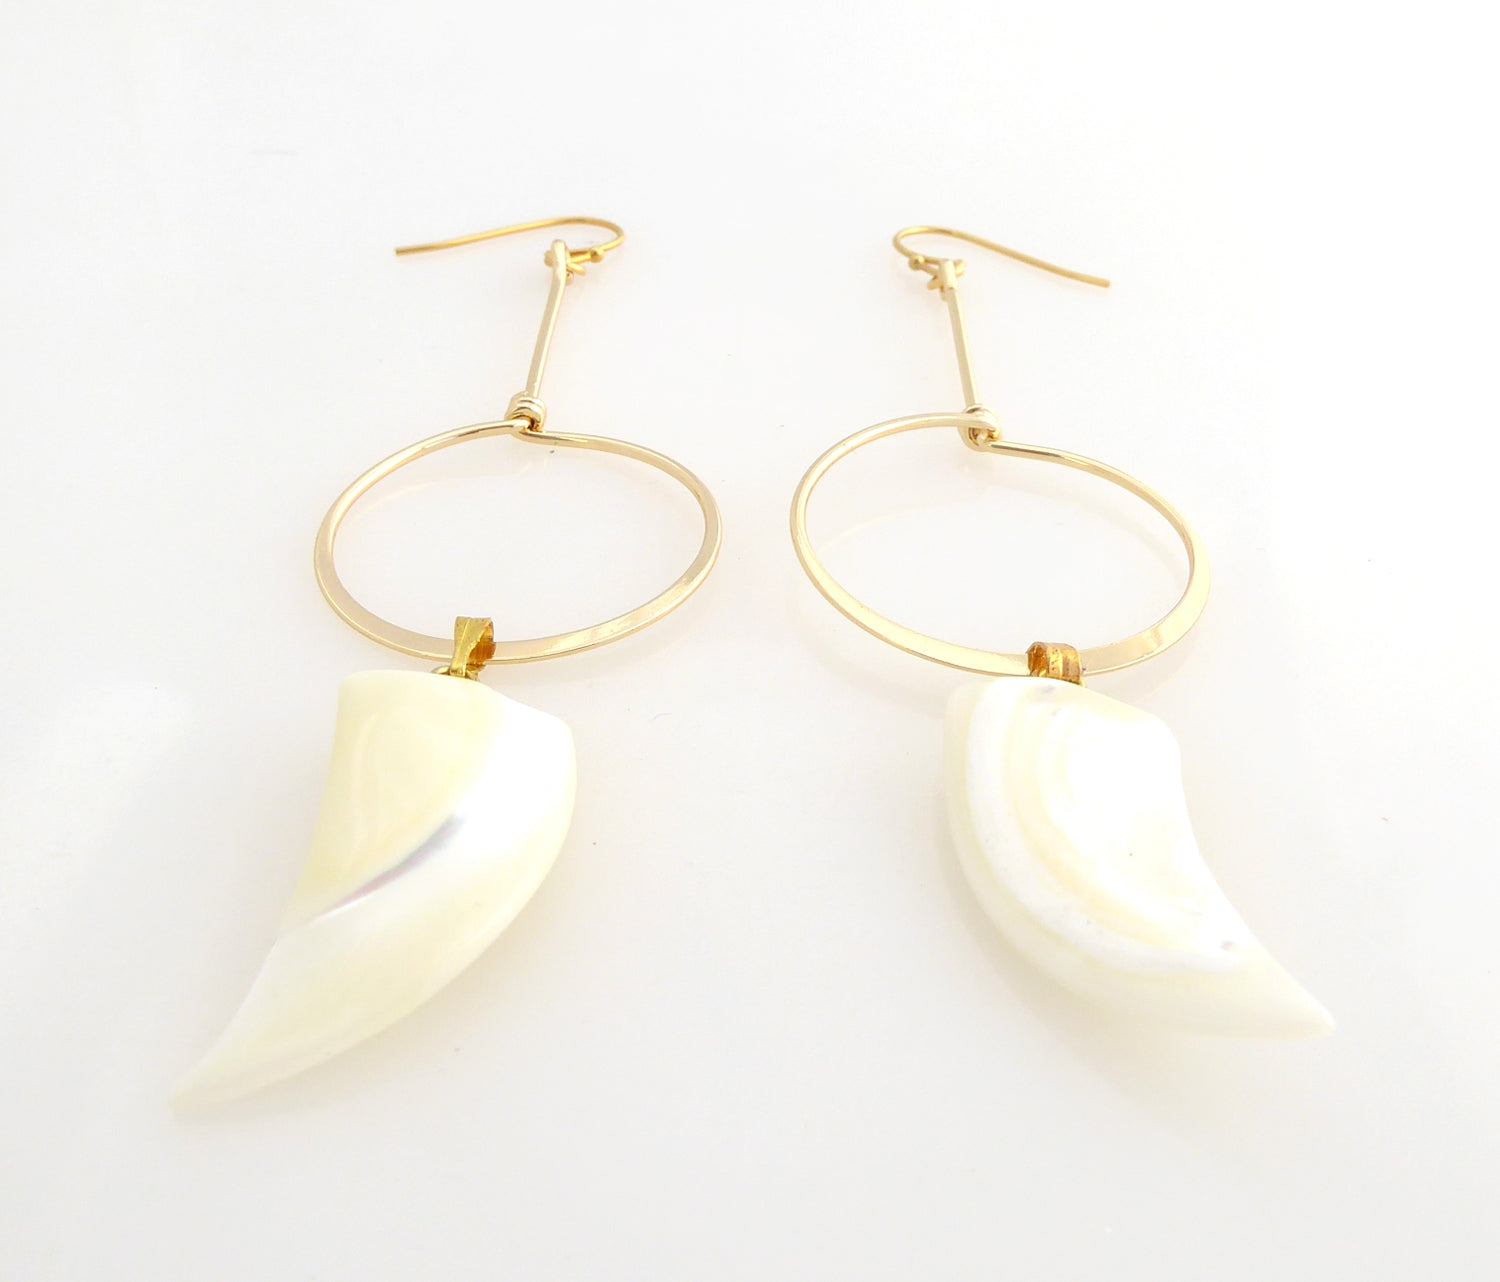 Meri shell earrings